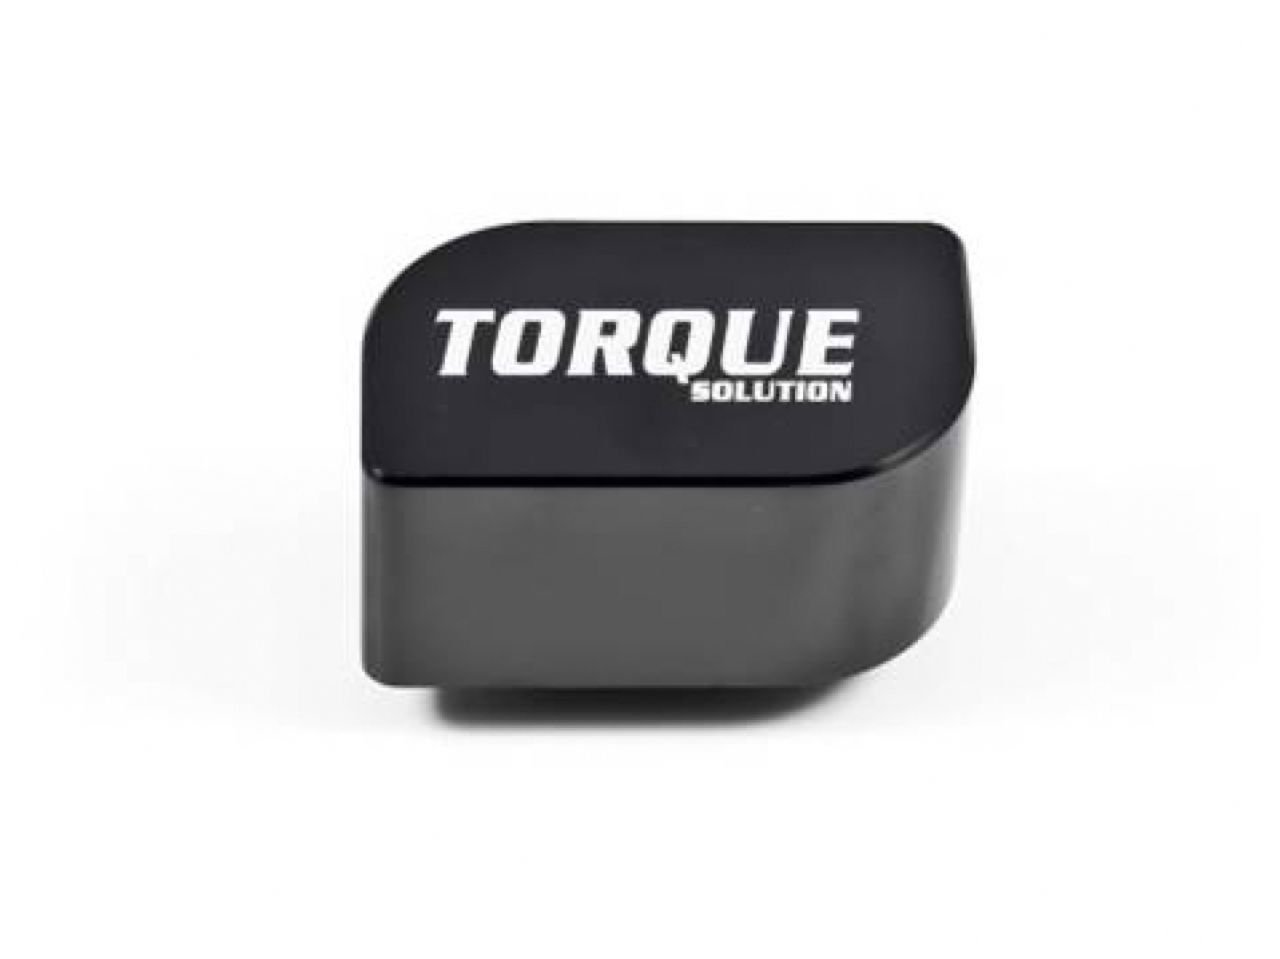 Torque Solution Short Shift Weight Fits Mazdaspeed 3 2010+